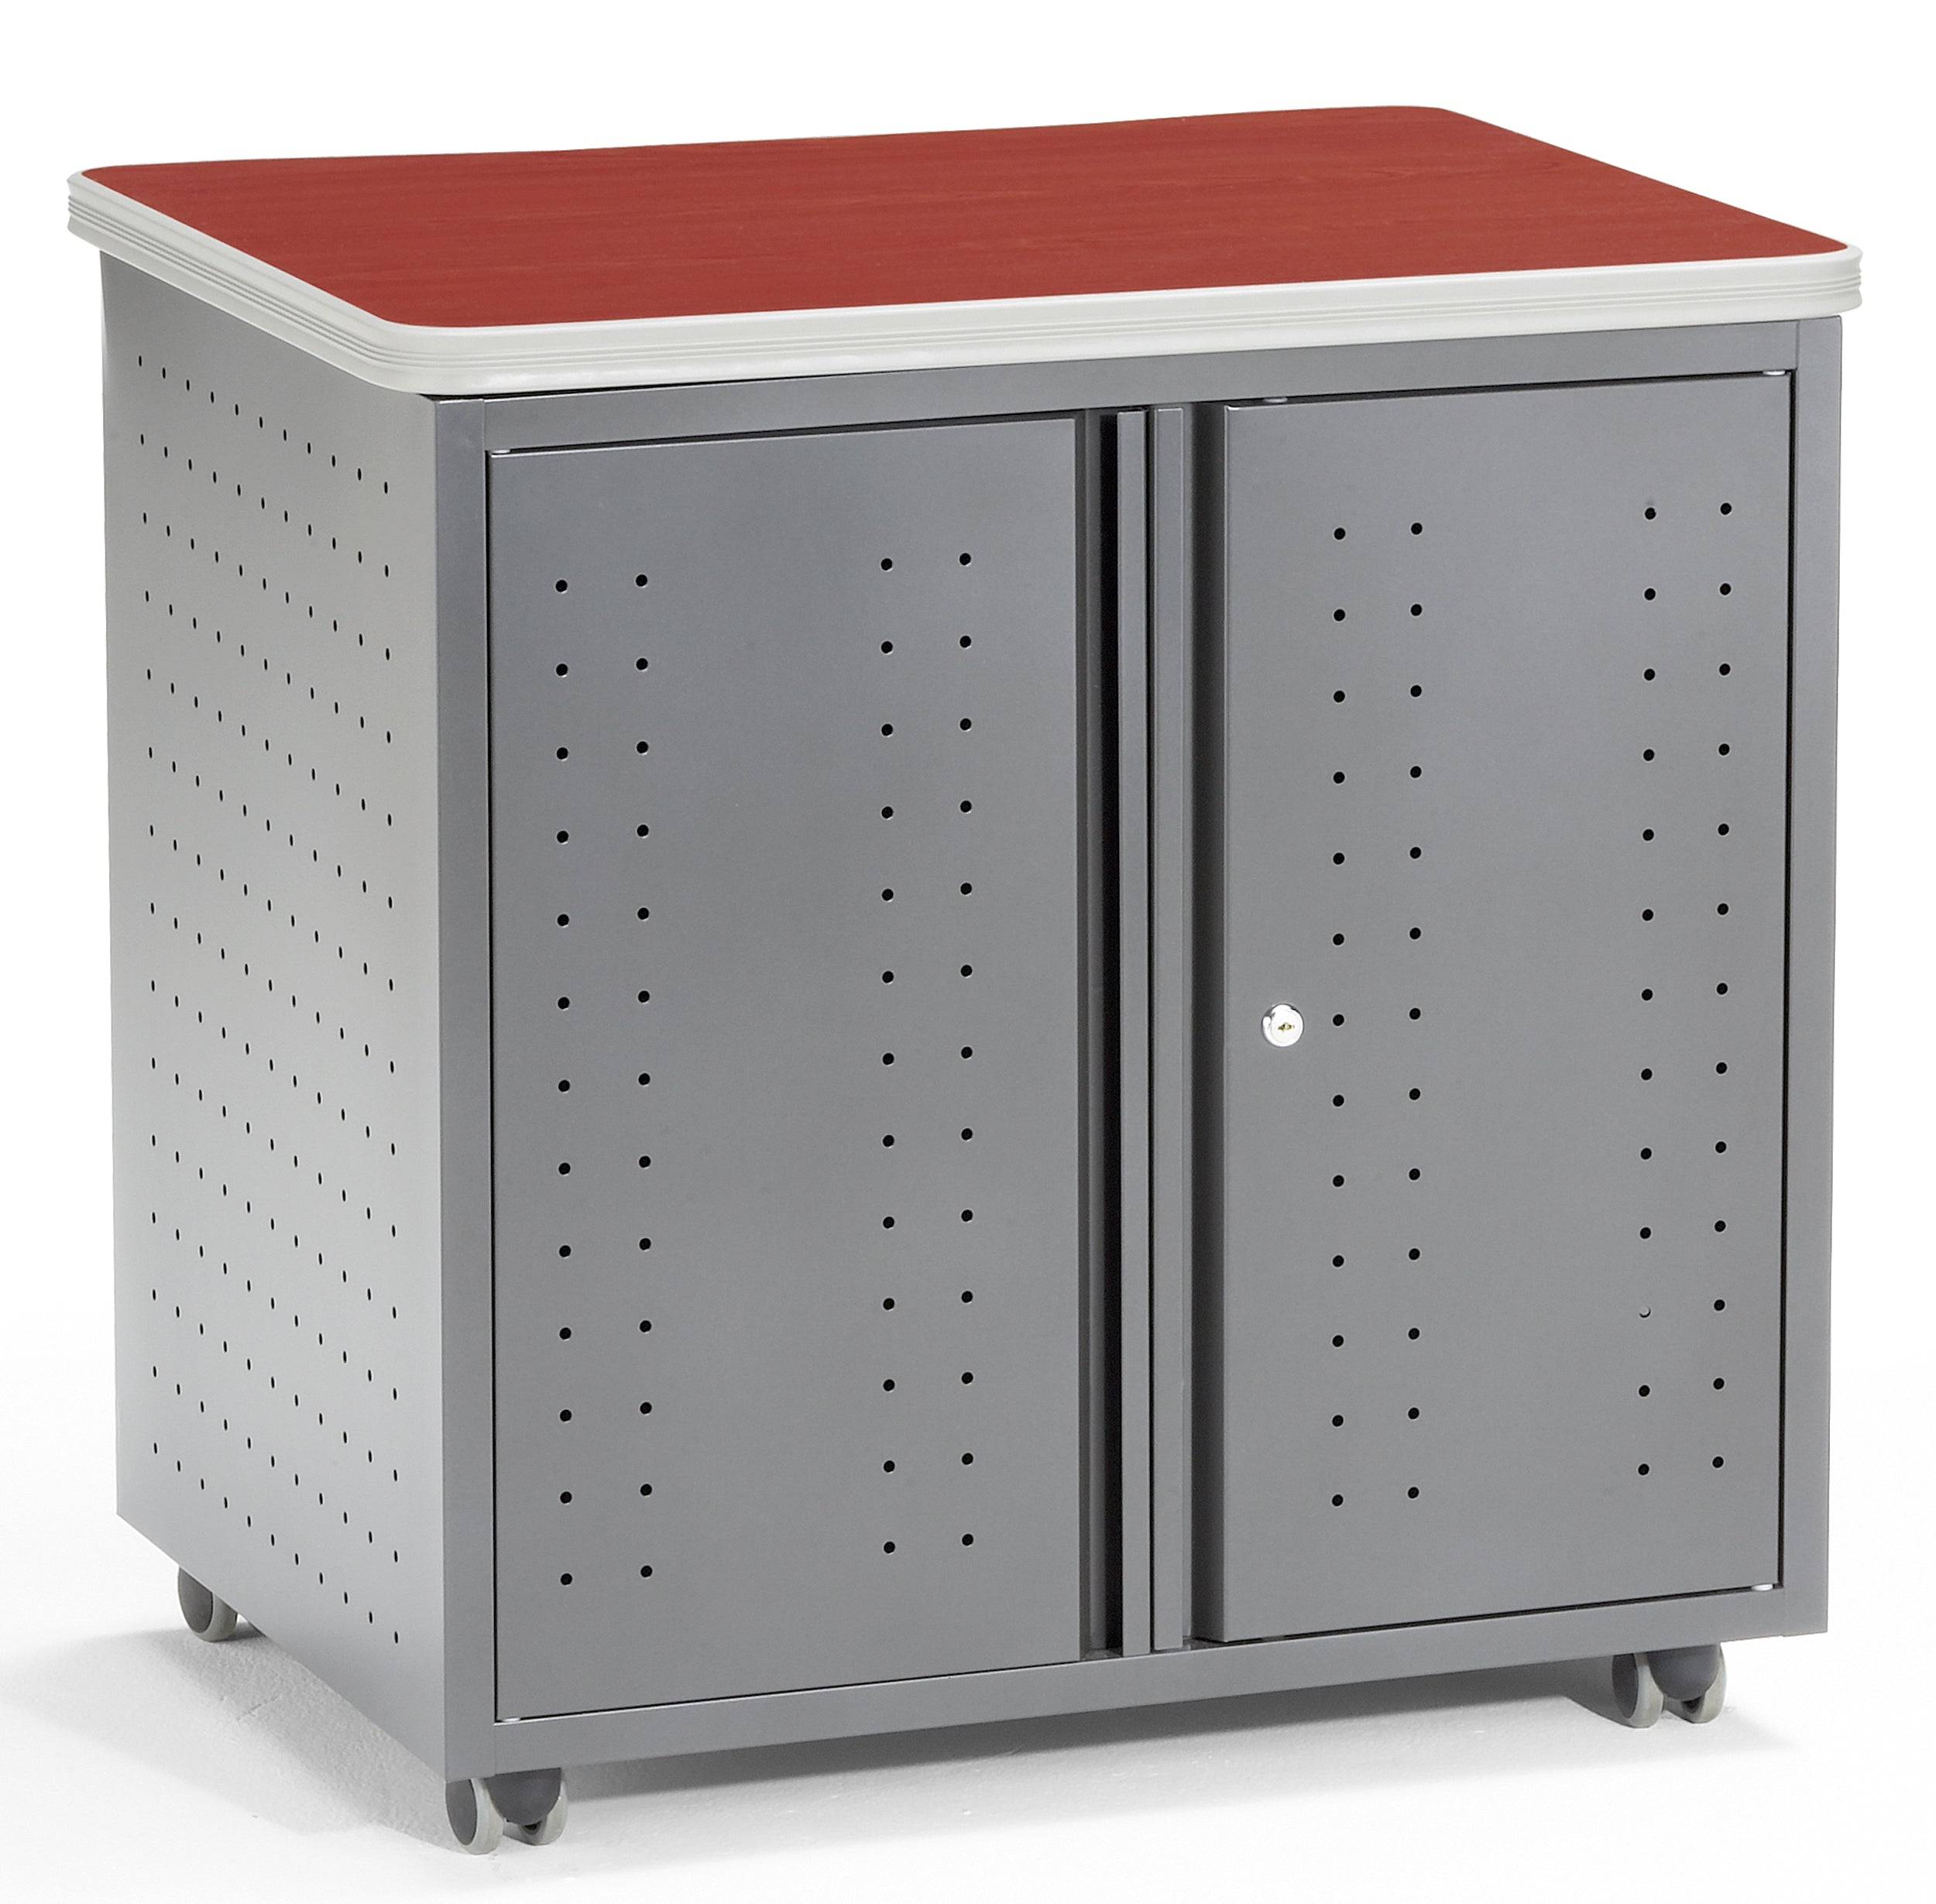 Model 66746 Mesa Series Wheeled Locking Mobile Utility Station Cabinet